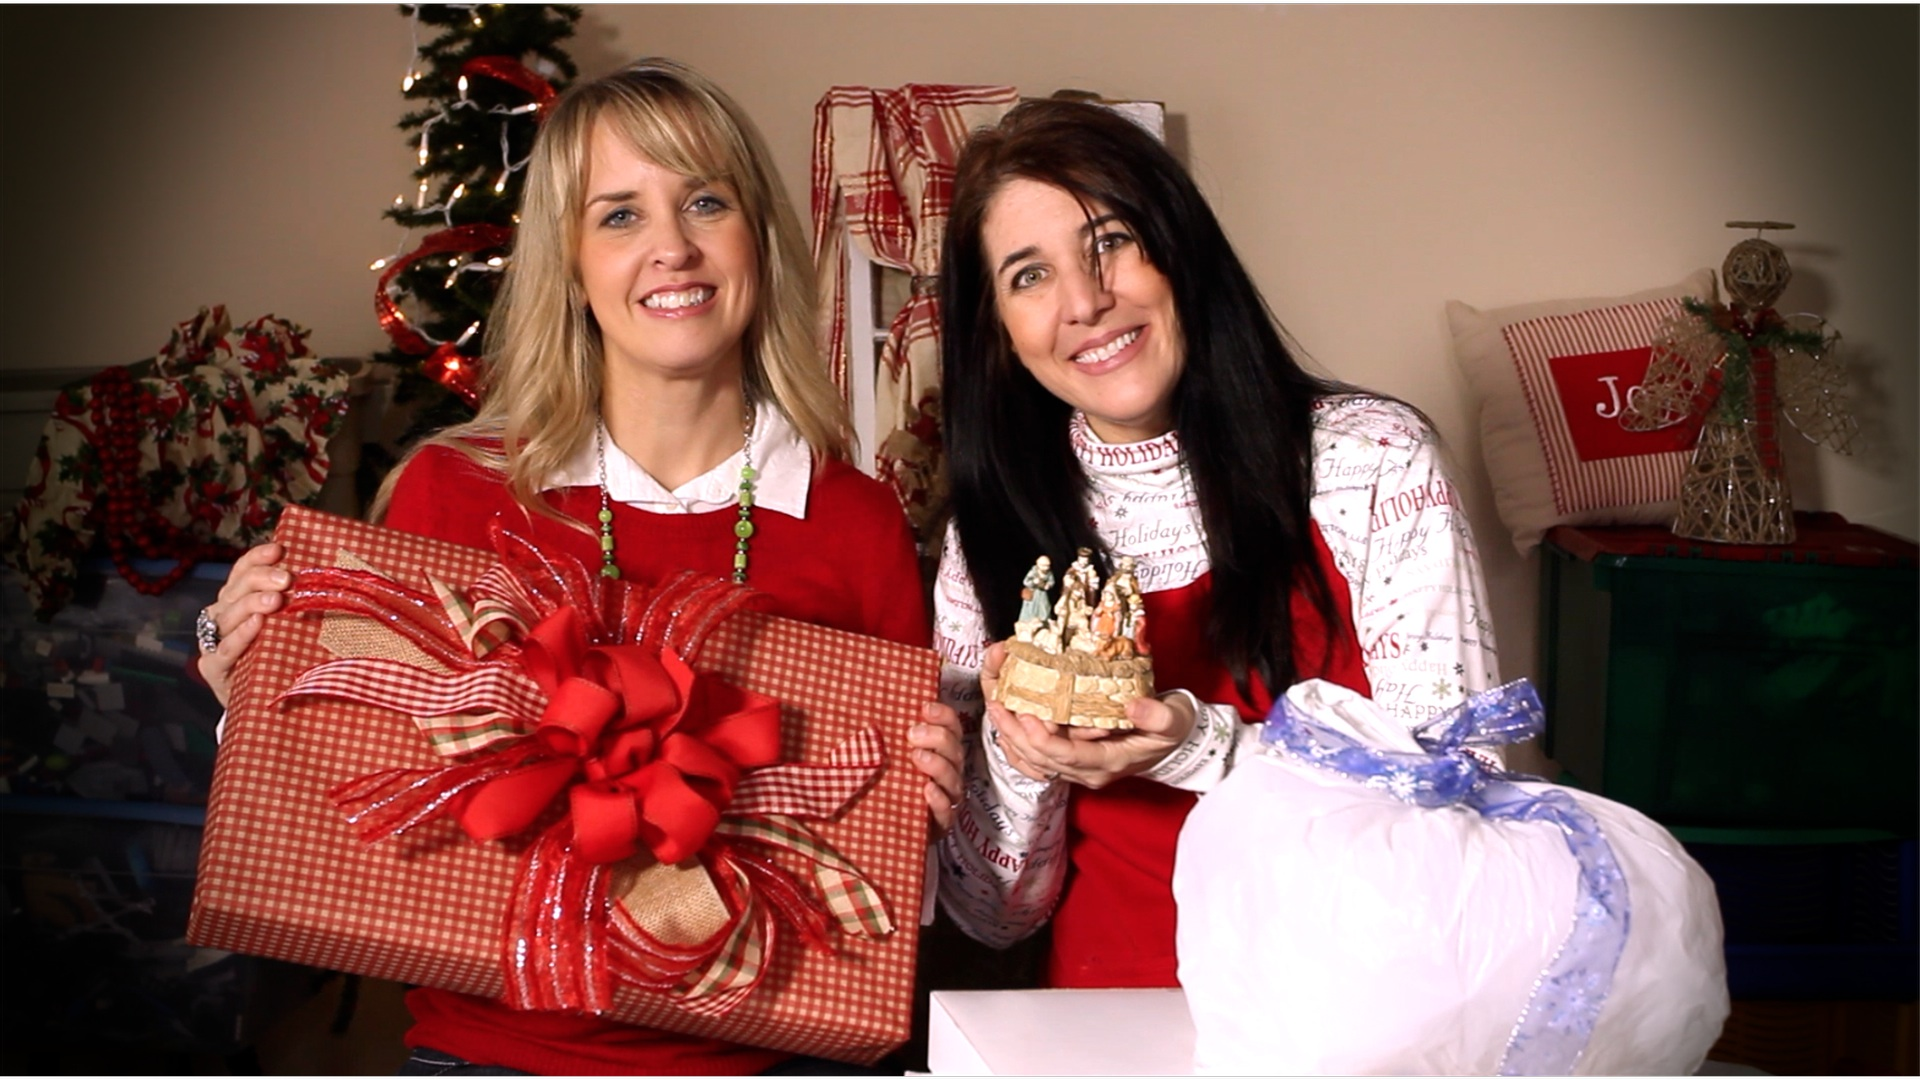 All Mom Wants For Christmas Video « The Skit Guys